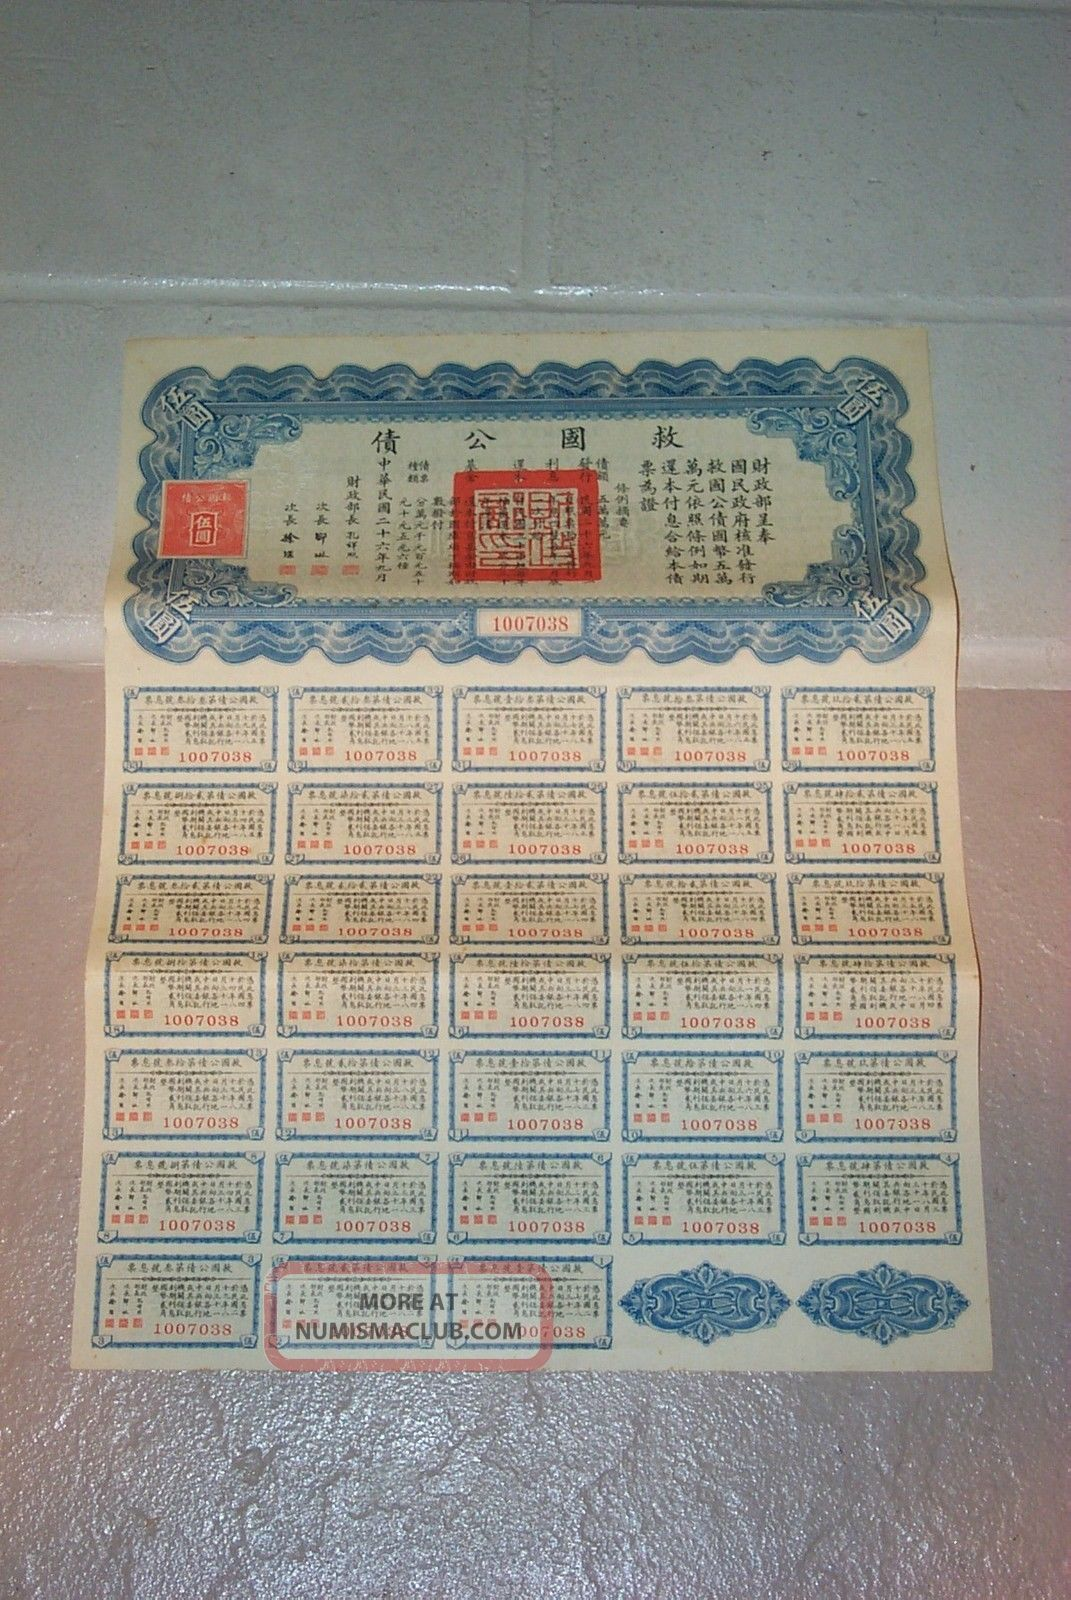 Near ($5) 1937 China Chinese Liberty Bond Uncancelled - All Coupons Stocks & Bonds, Scripophily photo